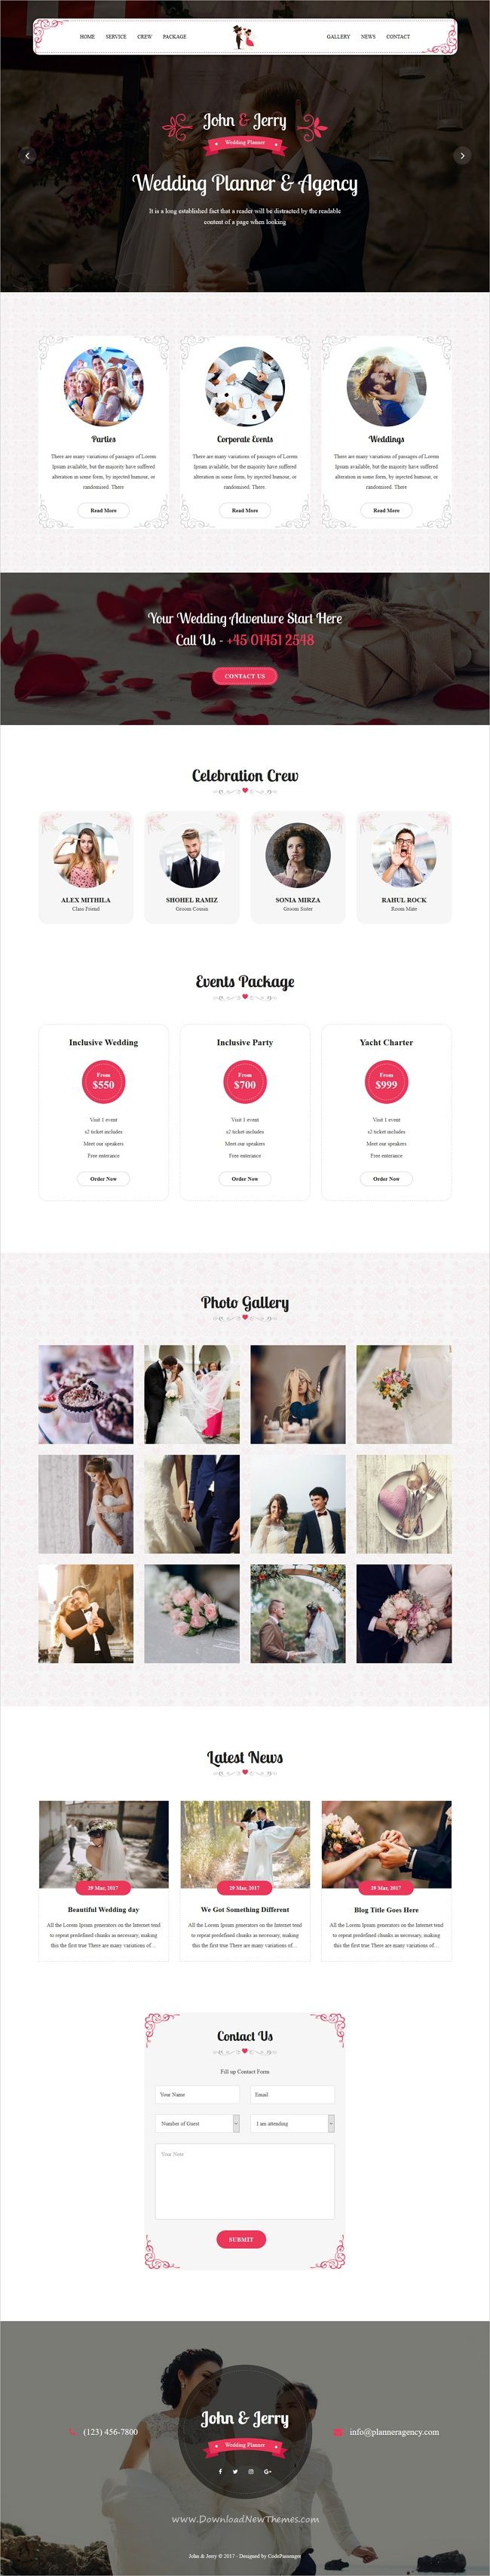 John and Jerry is clean and modern design 3in1 responsive #WordPress theme for #wedding #agency website download now > https://themeforest.net/item/john-jerry-a-wordpress-wedding-theme/19852079?ref=Datasata